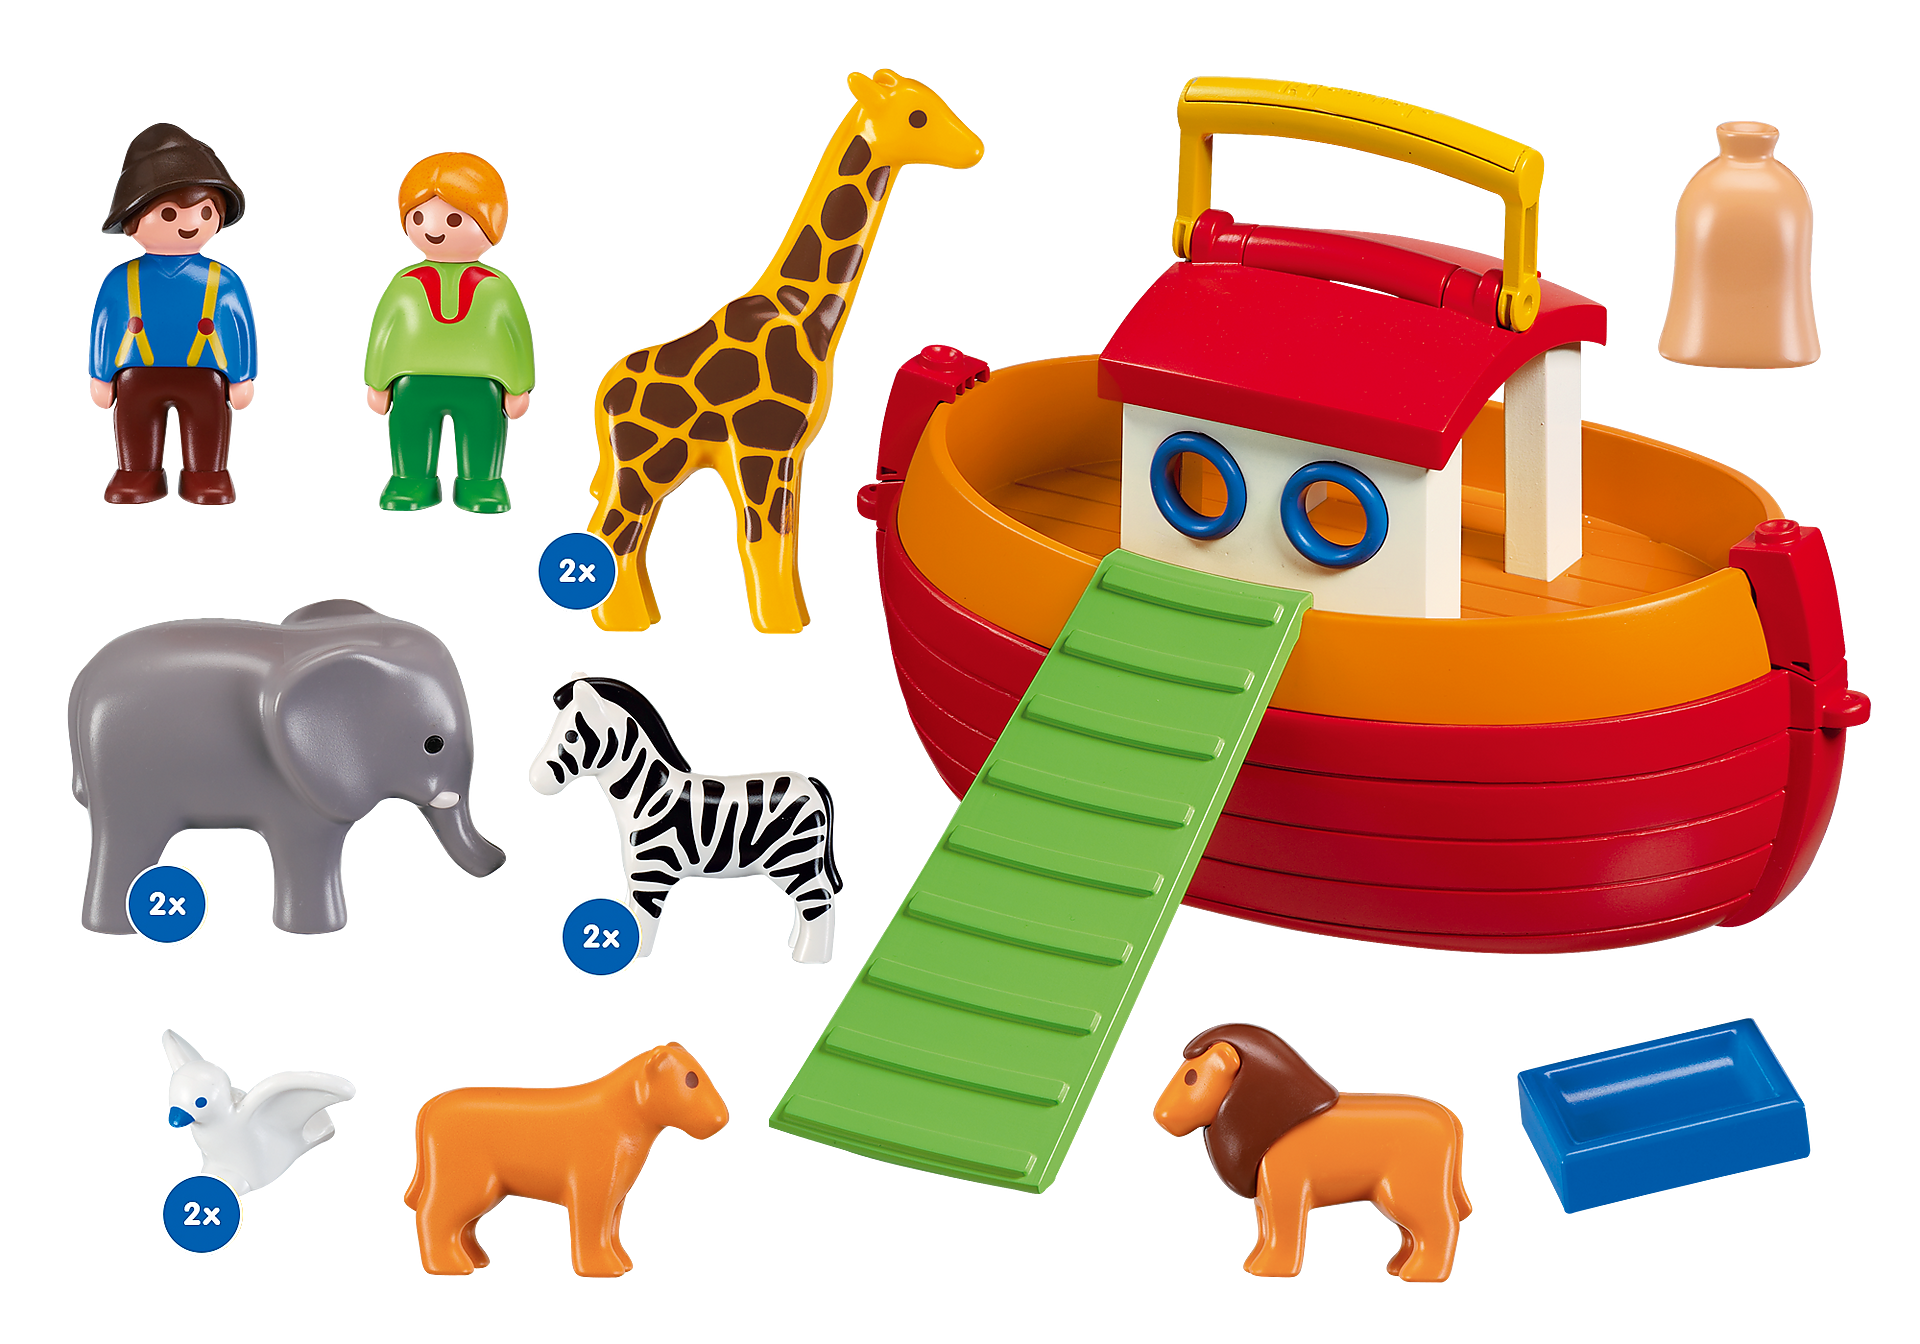 http://media.playmobil.com/i/playmobil/6765_product_box_back/1.2.3 Mala Arca de Noé